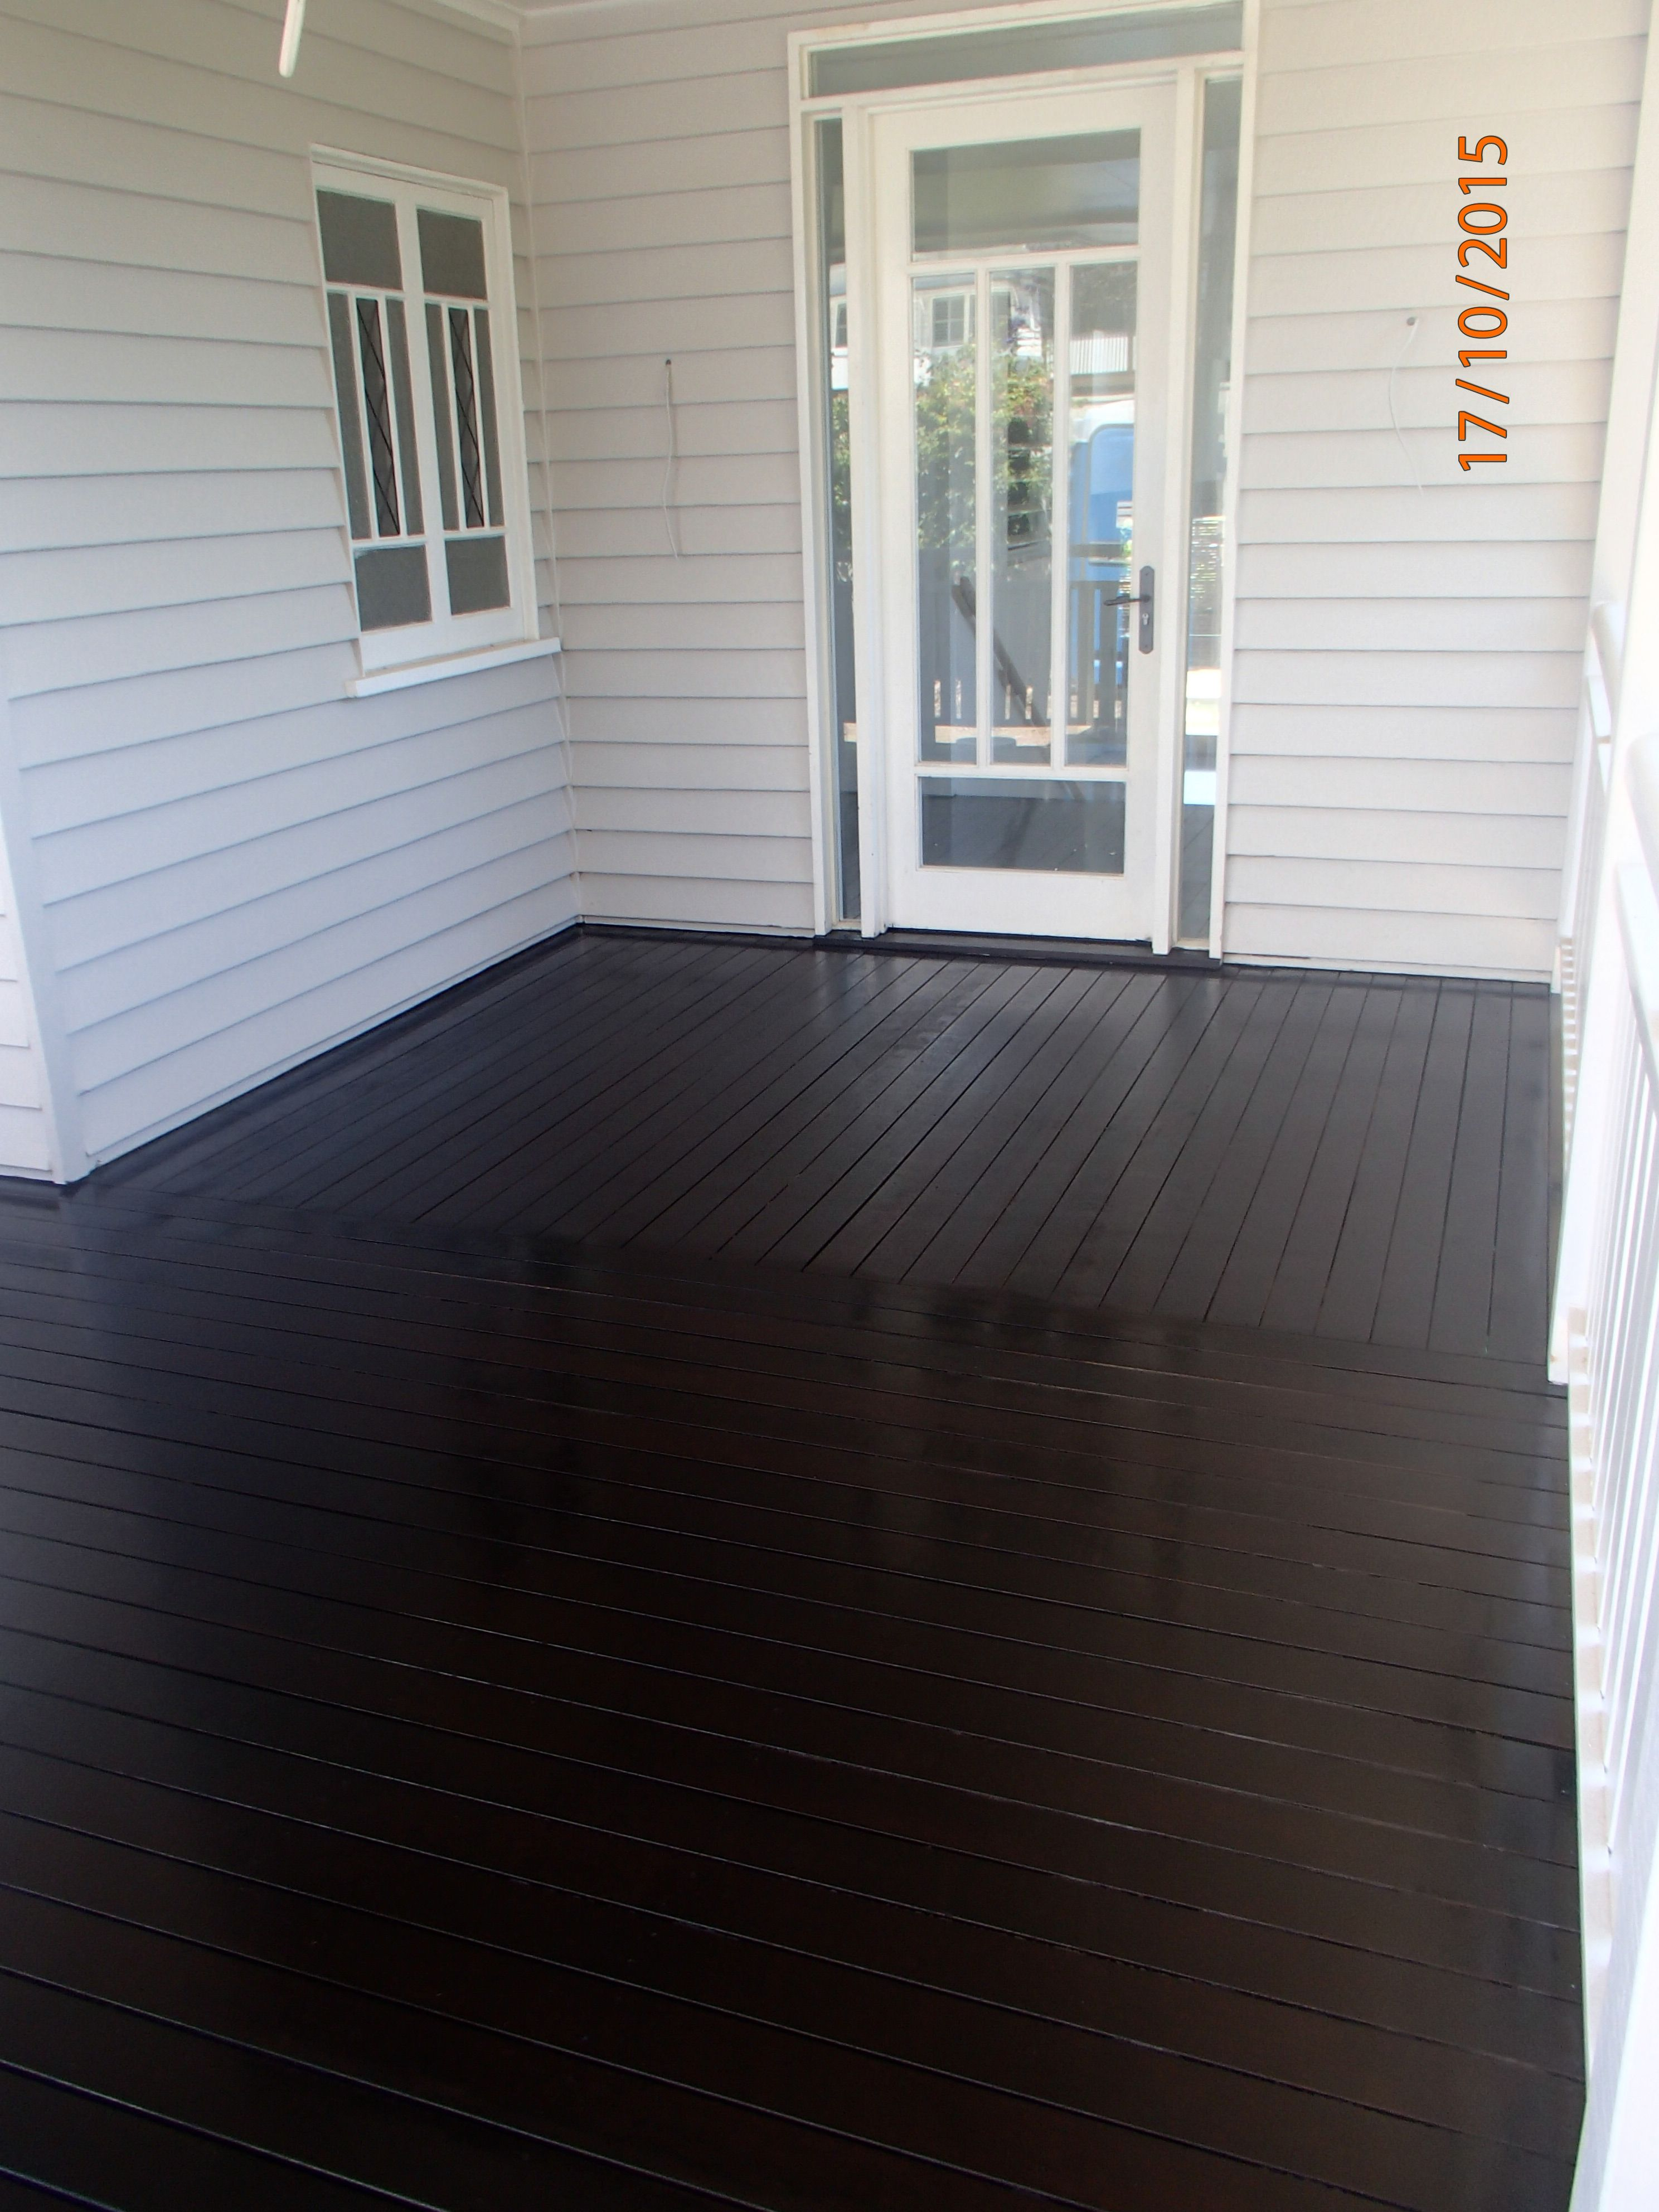 A Dramatic Black Stained Deck For That Wow Factor We Used Feast Watson Black Deck Stain This Deck Is In Clayfield Brisbane Patio Stain Deck Paint Black Deck